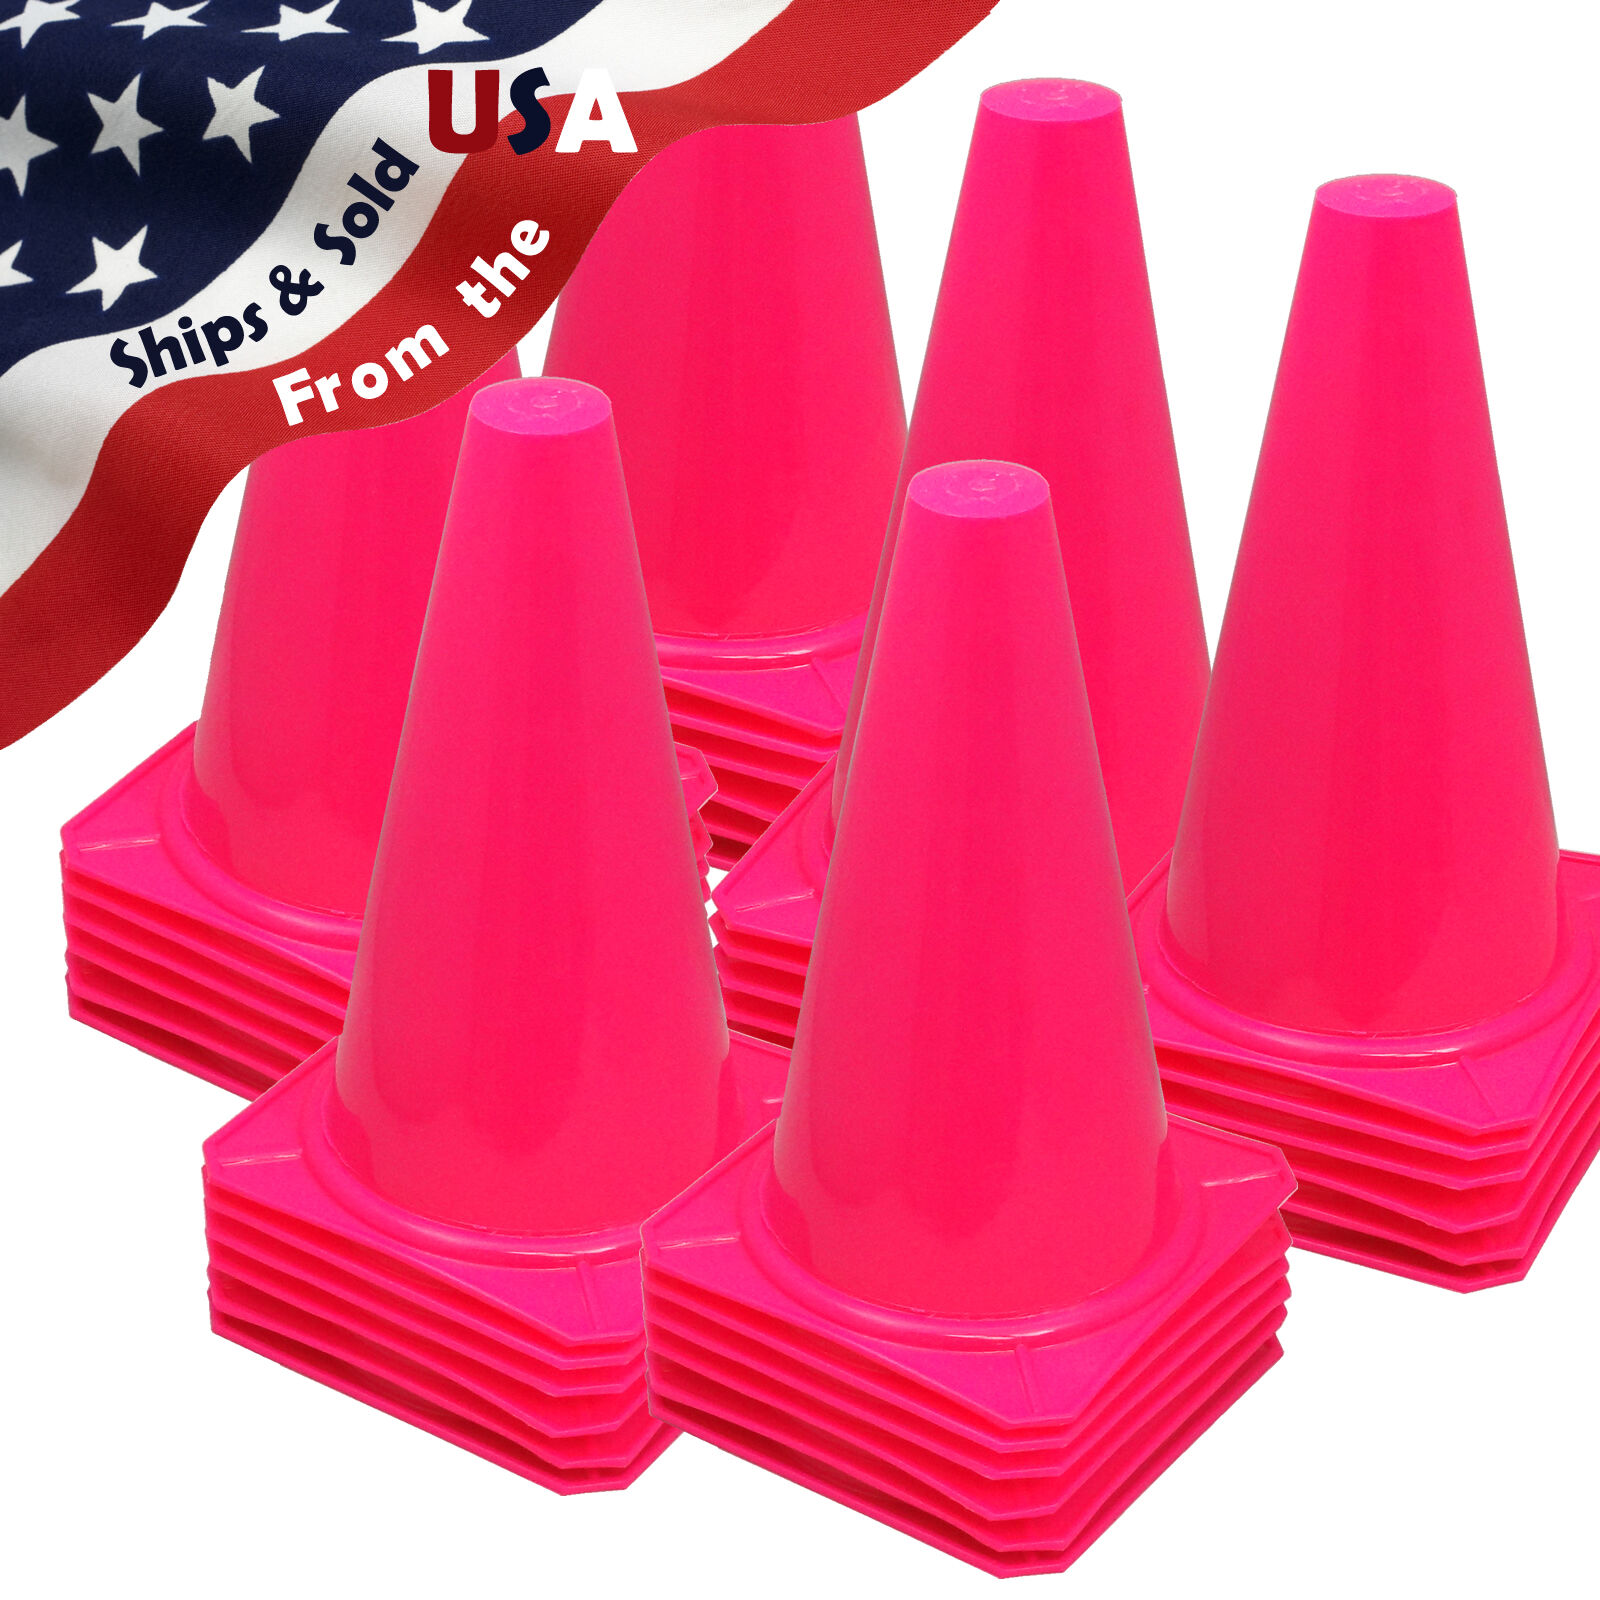 NEW  9  Tall PINK CONES Sports Training Safety Cone Horse Training Qty 36